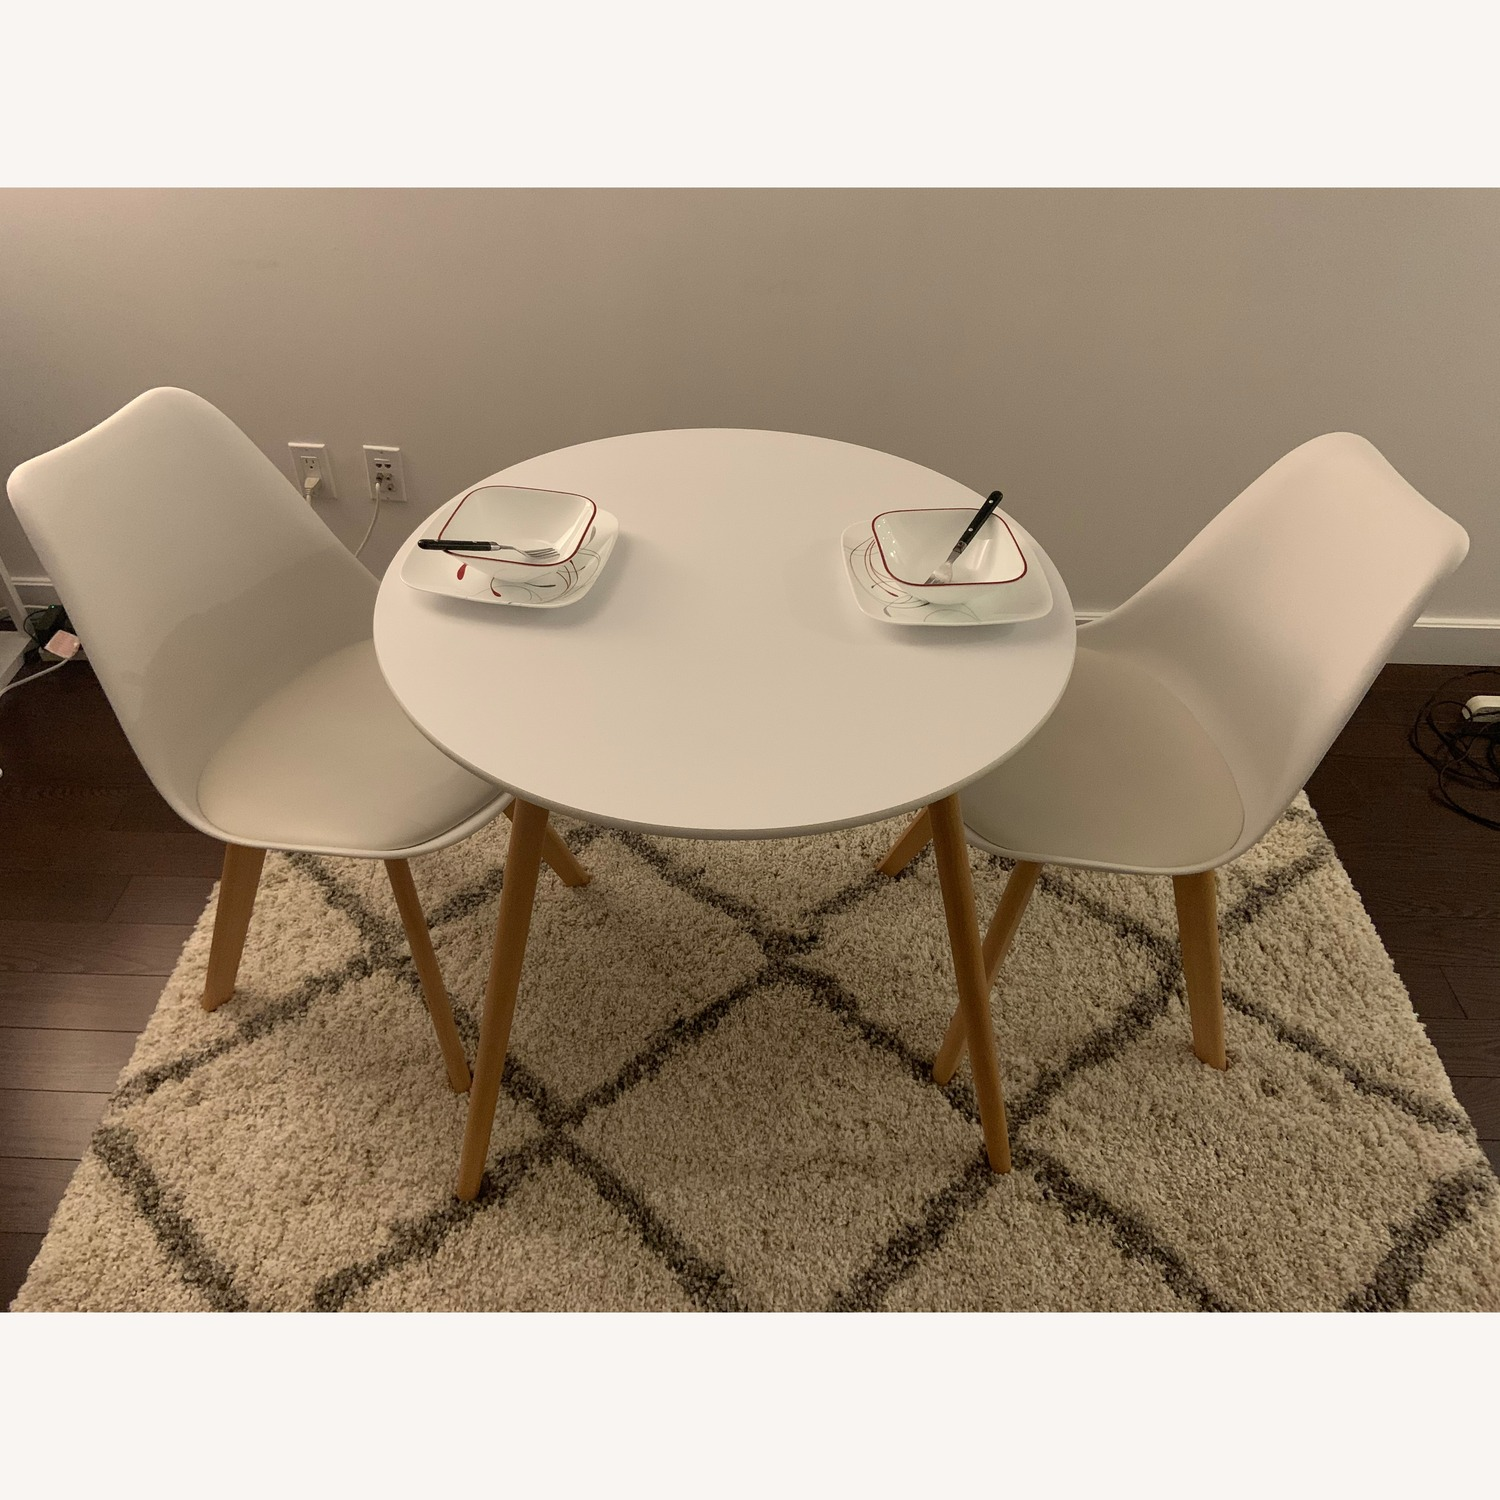 Mid-Century Modern Dining Table Set with 2 Chairs